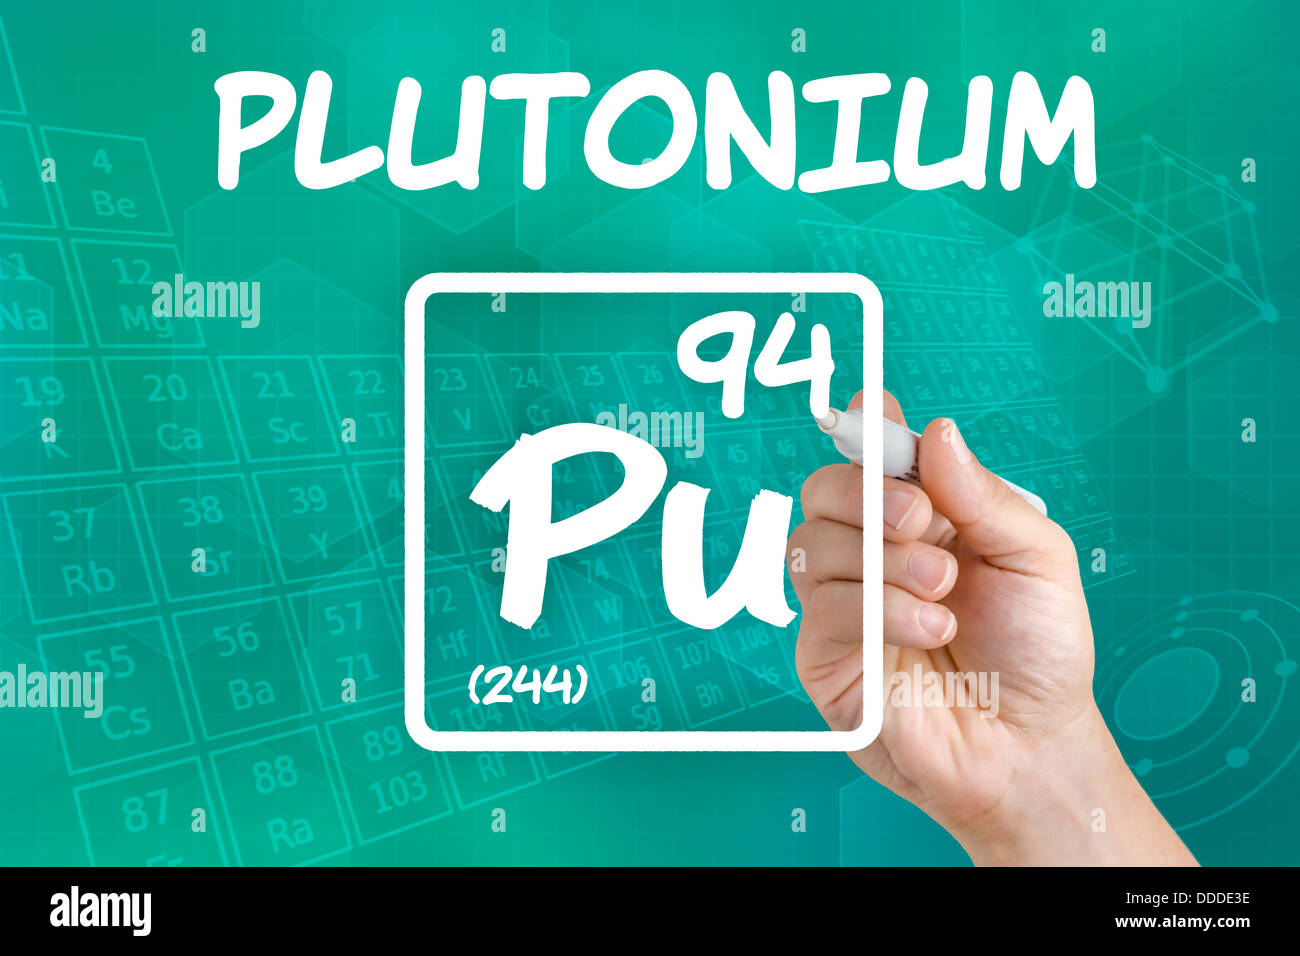 Symbol for the chemical element plutonium - Stock Image